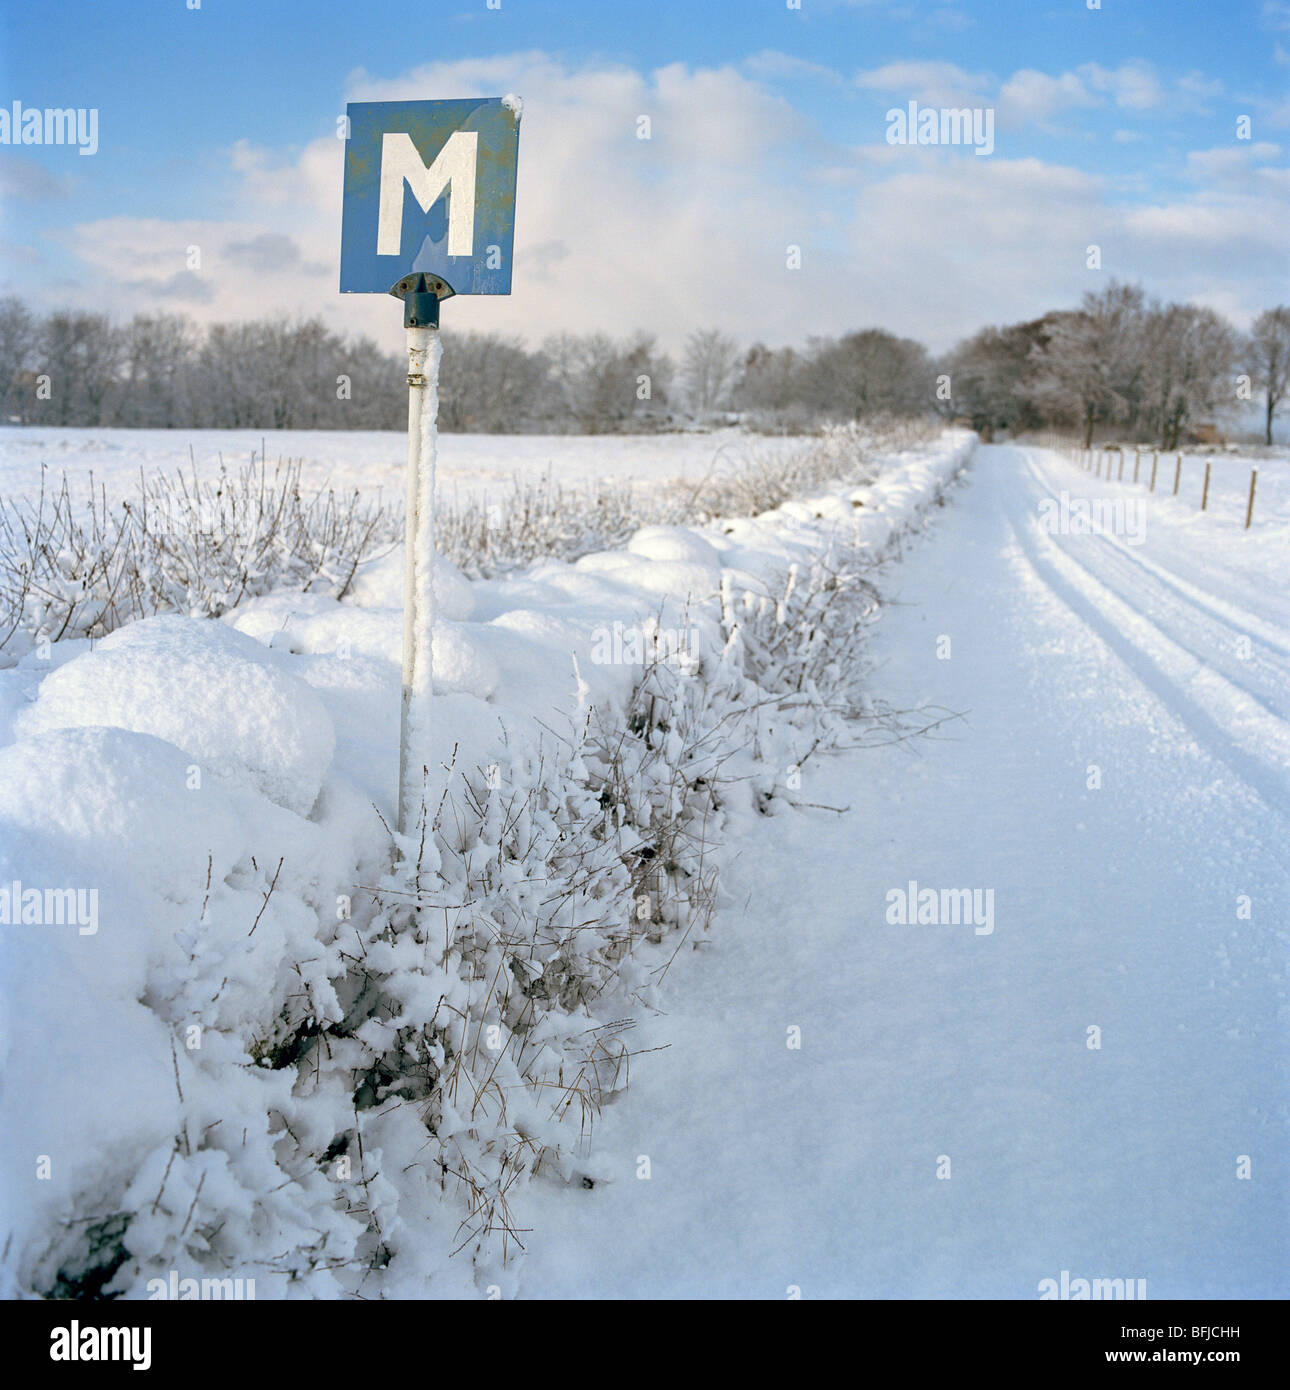 A meeting sign on a winter road, Sweden. - Stock Image